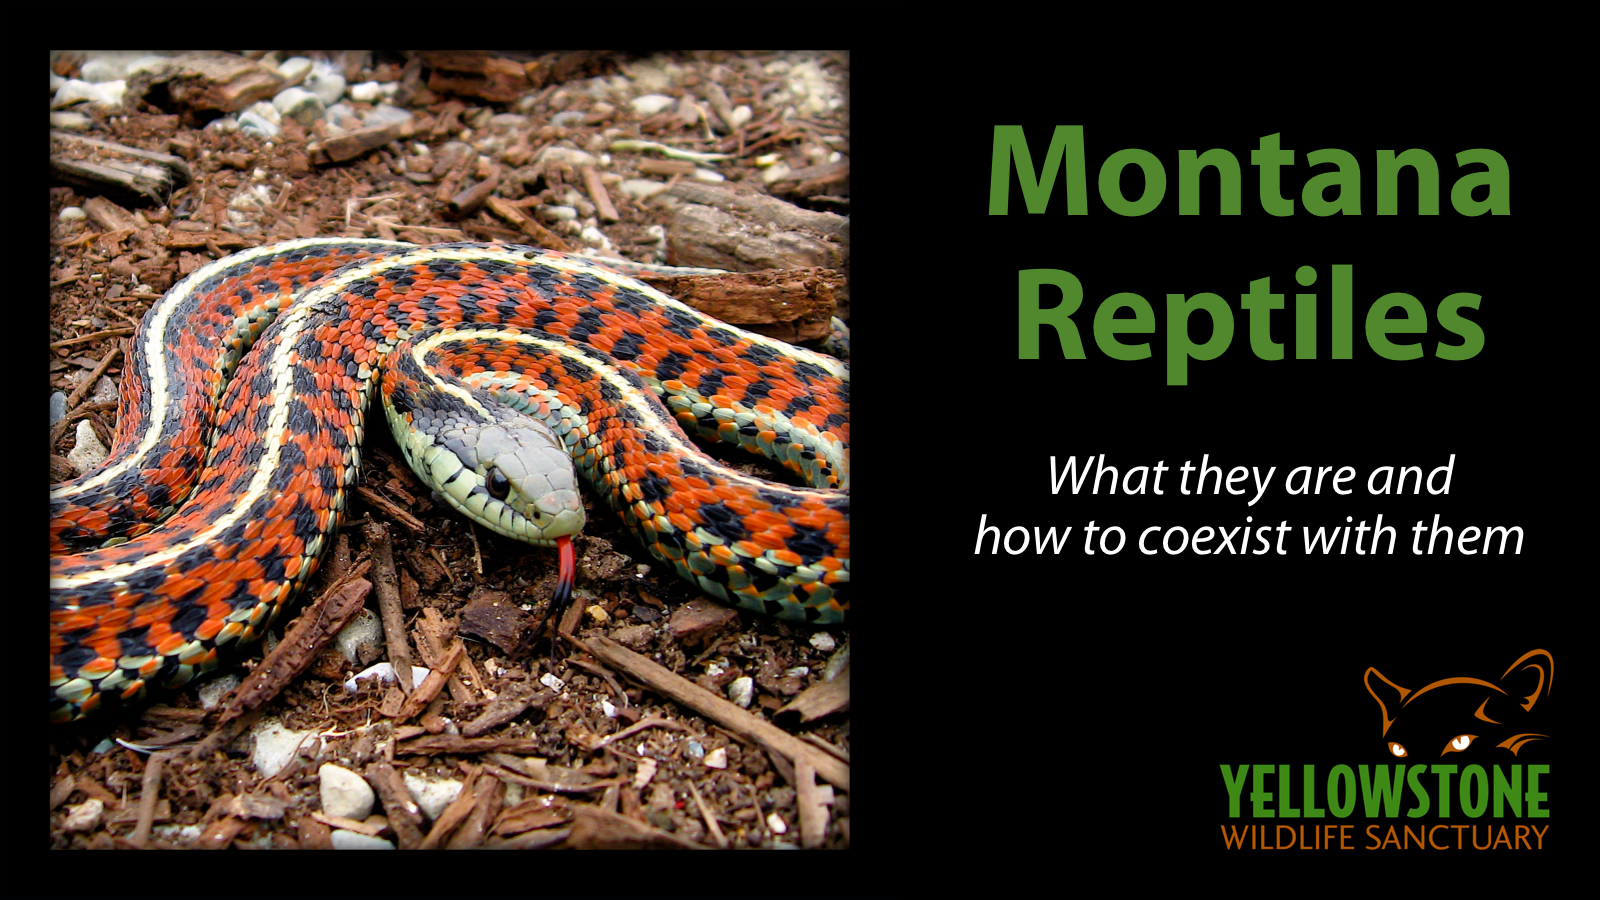 This class can follow  Classifying Yellowstone Mammals  or stand alone. Students will learn about reptiles in general, and then get specific about the ones that live in Montana. We also discuss identifying venomous snakes.